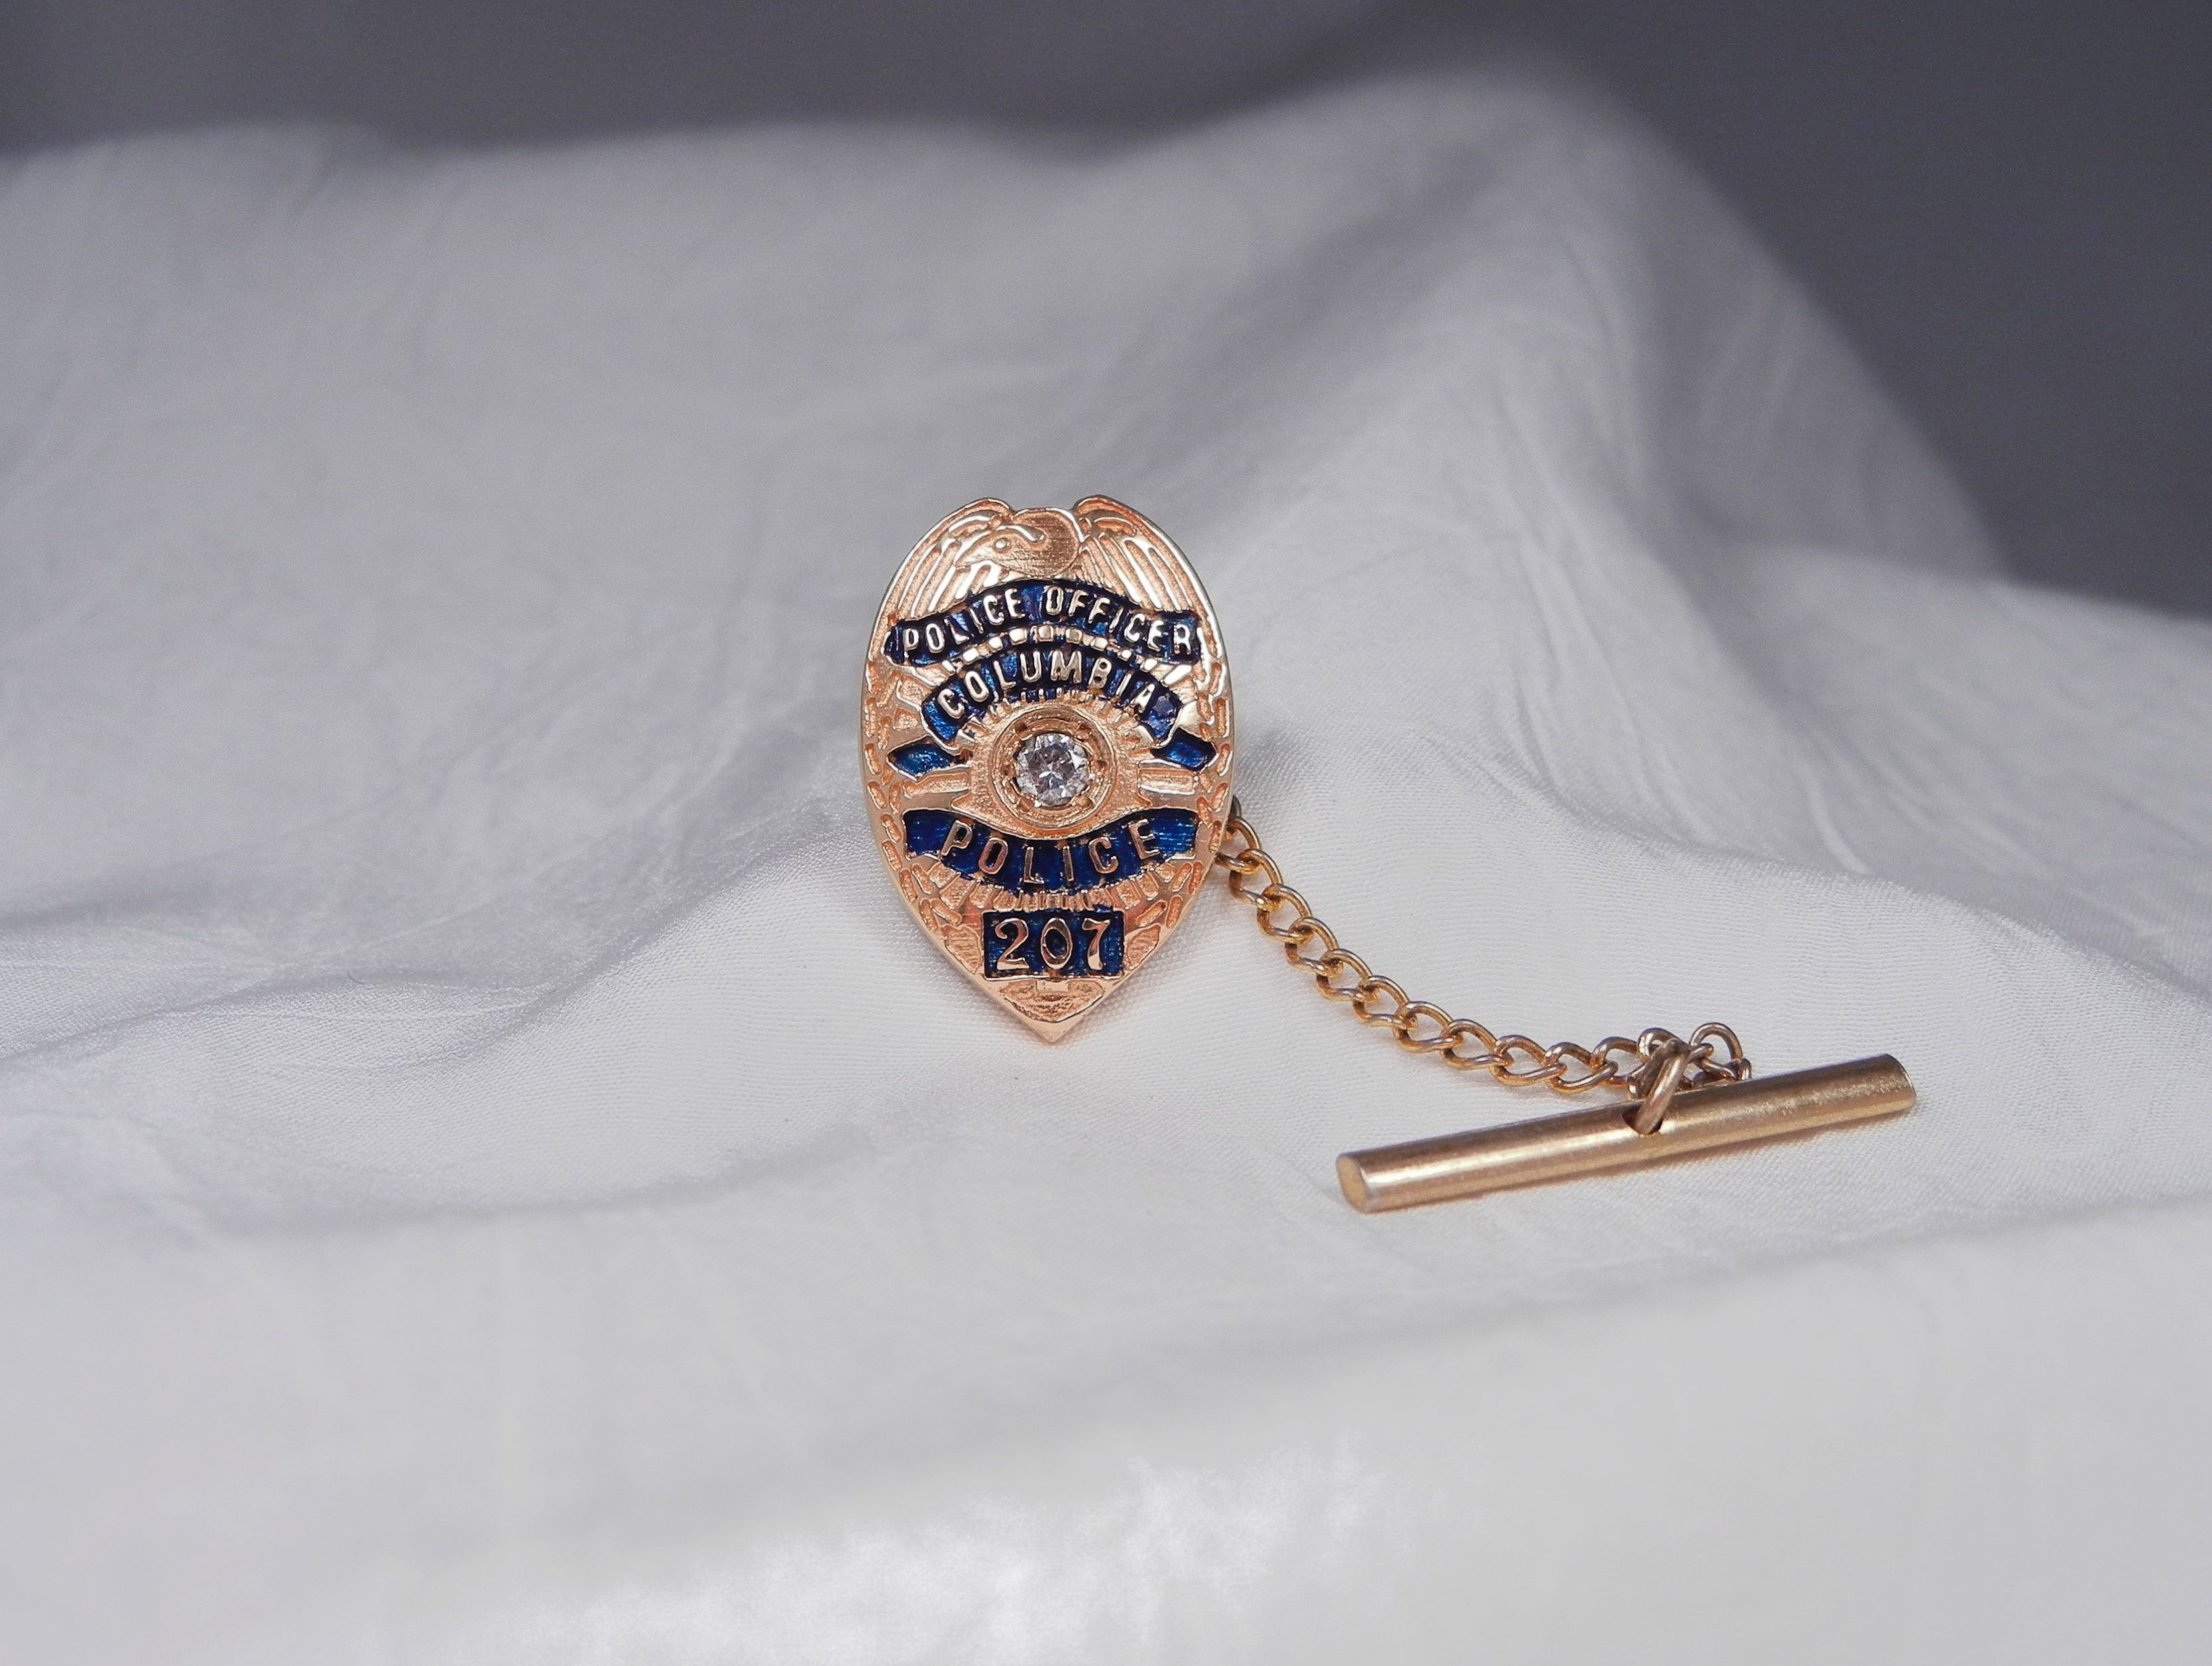 police costume badge accessories halloween officer cop pendant